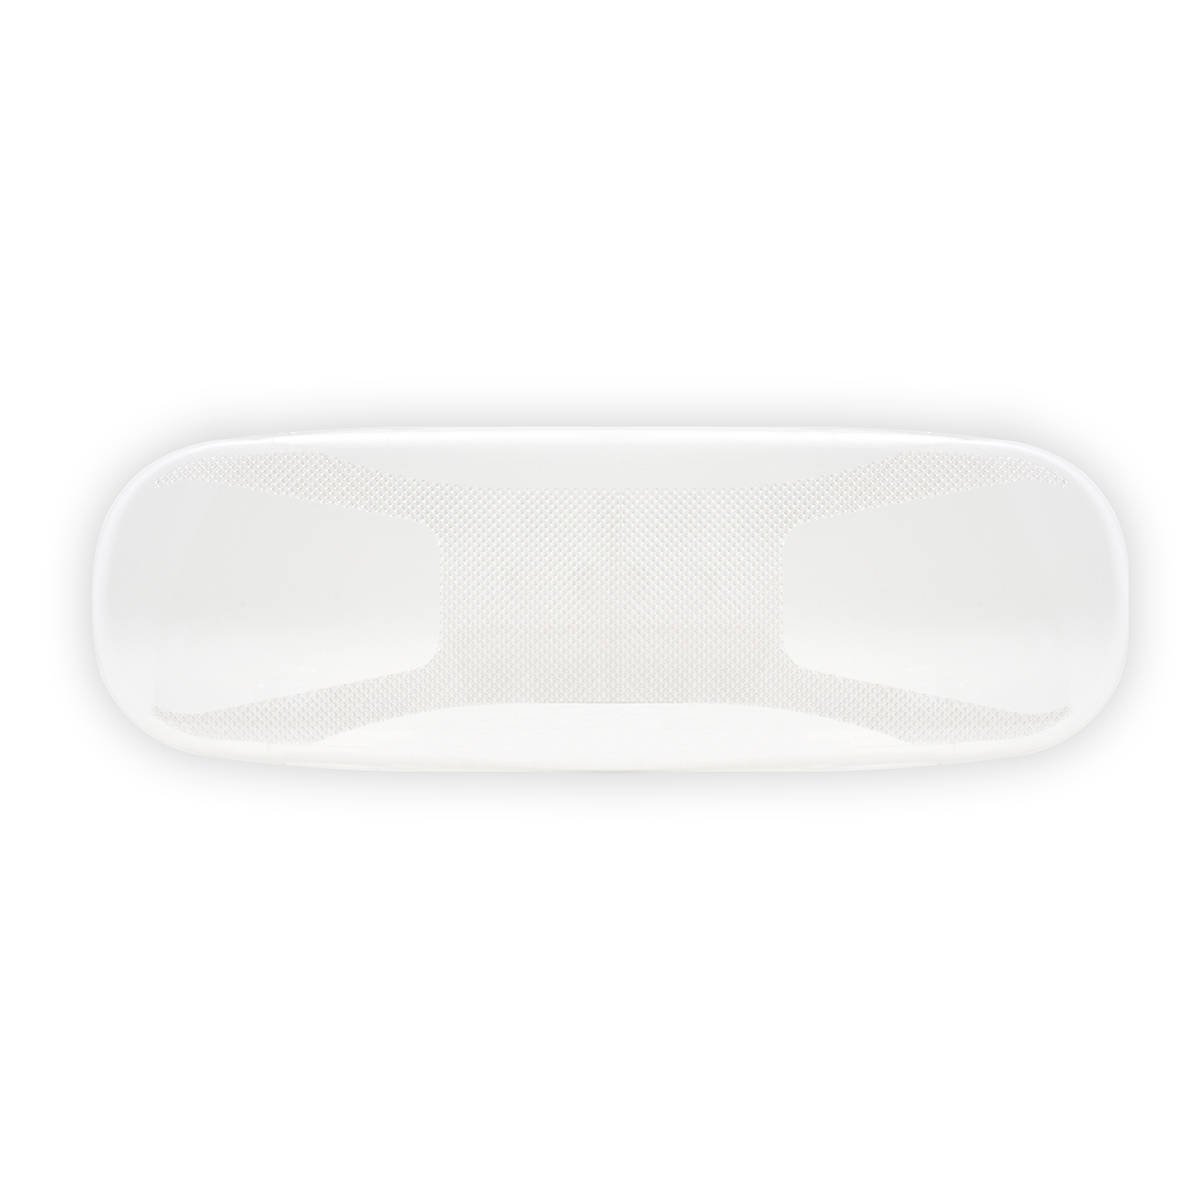 67782 Large Dome Light Lens for Freightliner Cascadia